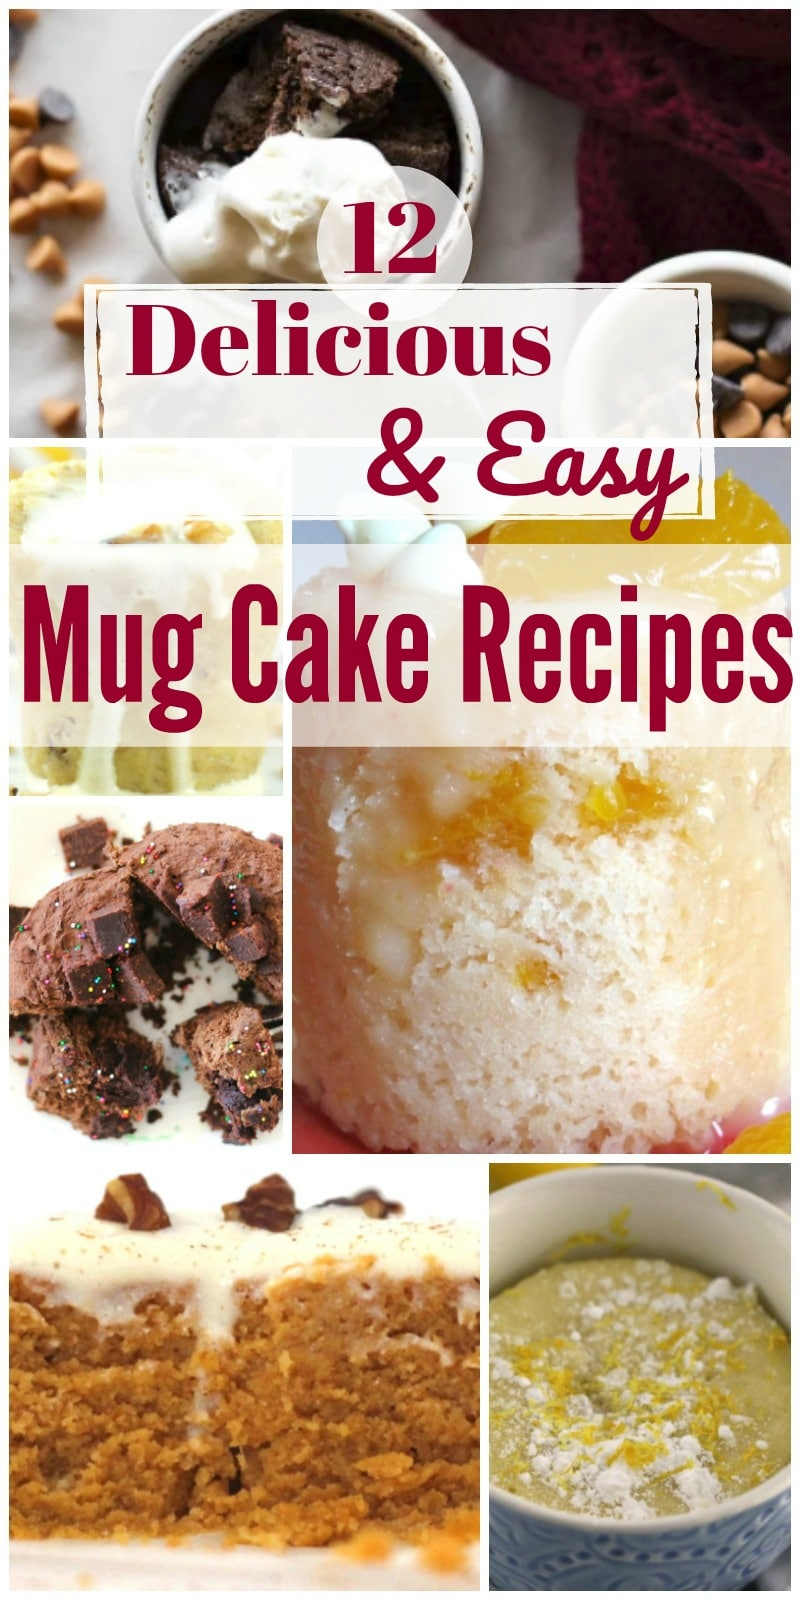 There are surprisingly a lot of mug cake recipes out there and with a variety of flavors and dietary options - including low carb and gluten free mug cakes.   Here are some of the most delicious mug cake recipes I've found to satisfy that sweet tooth.